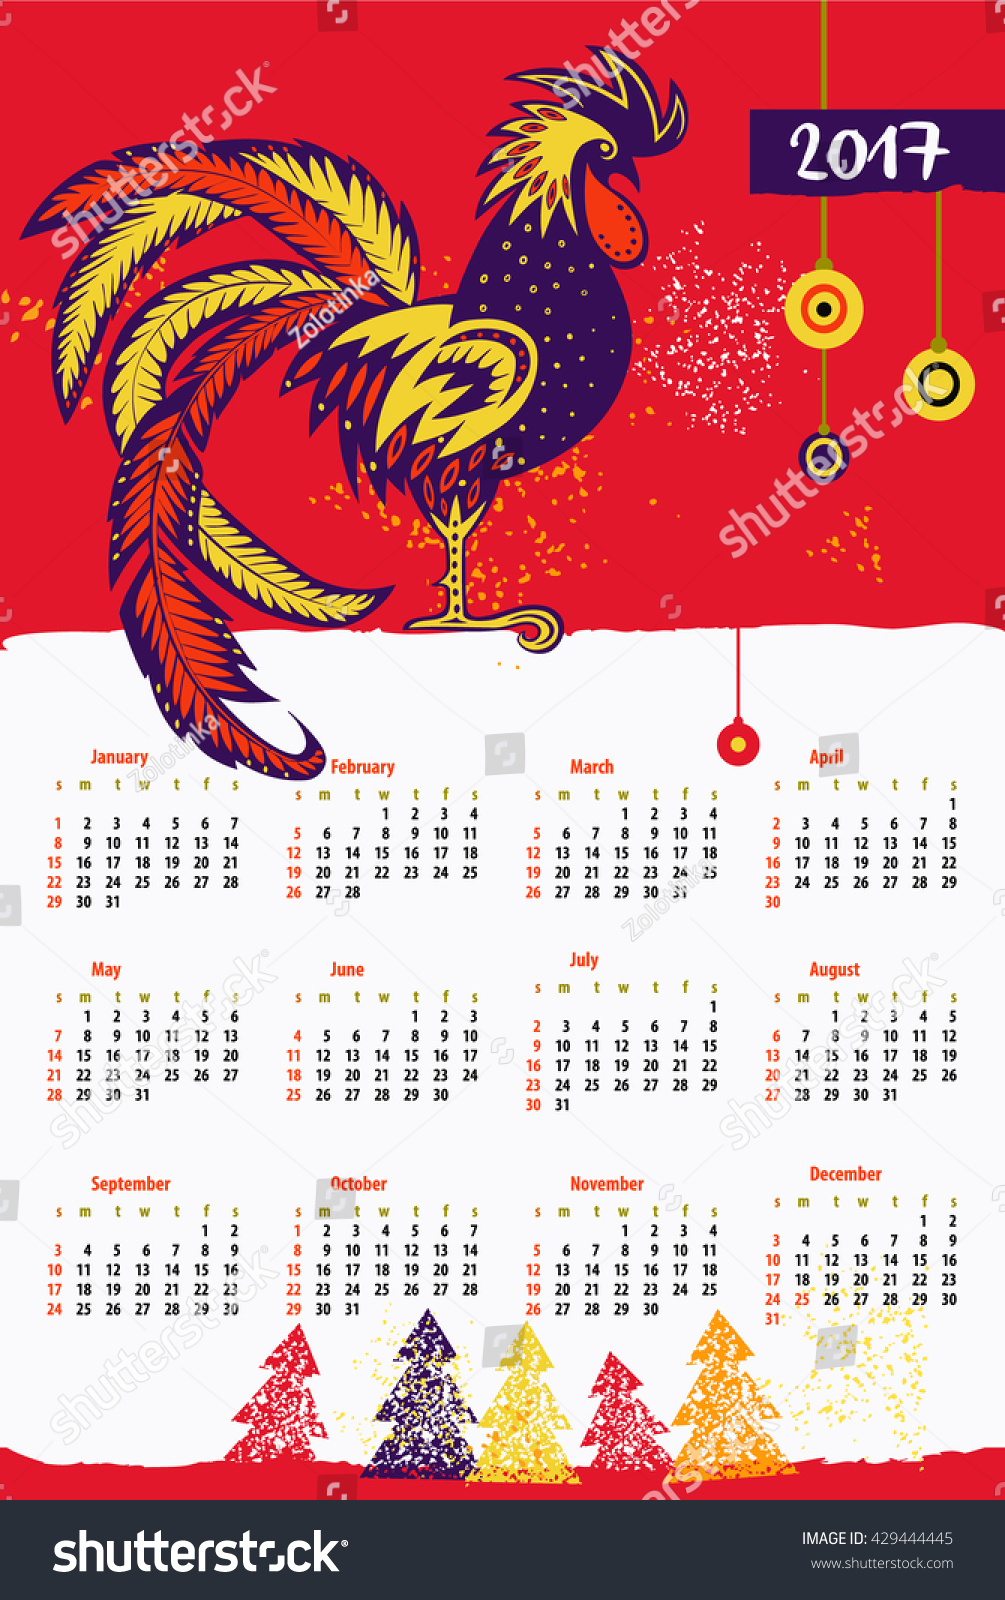 Chinese Calendar Illustration : Calendar chinese new year of the rooster vector